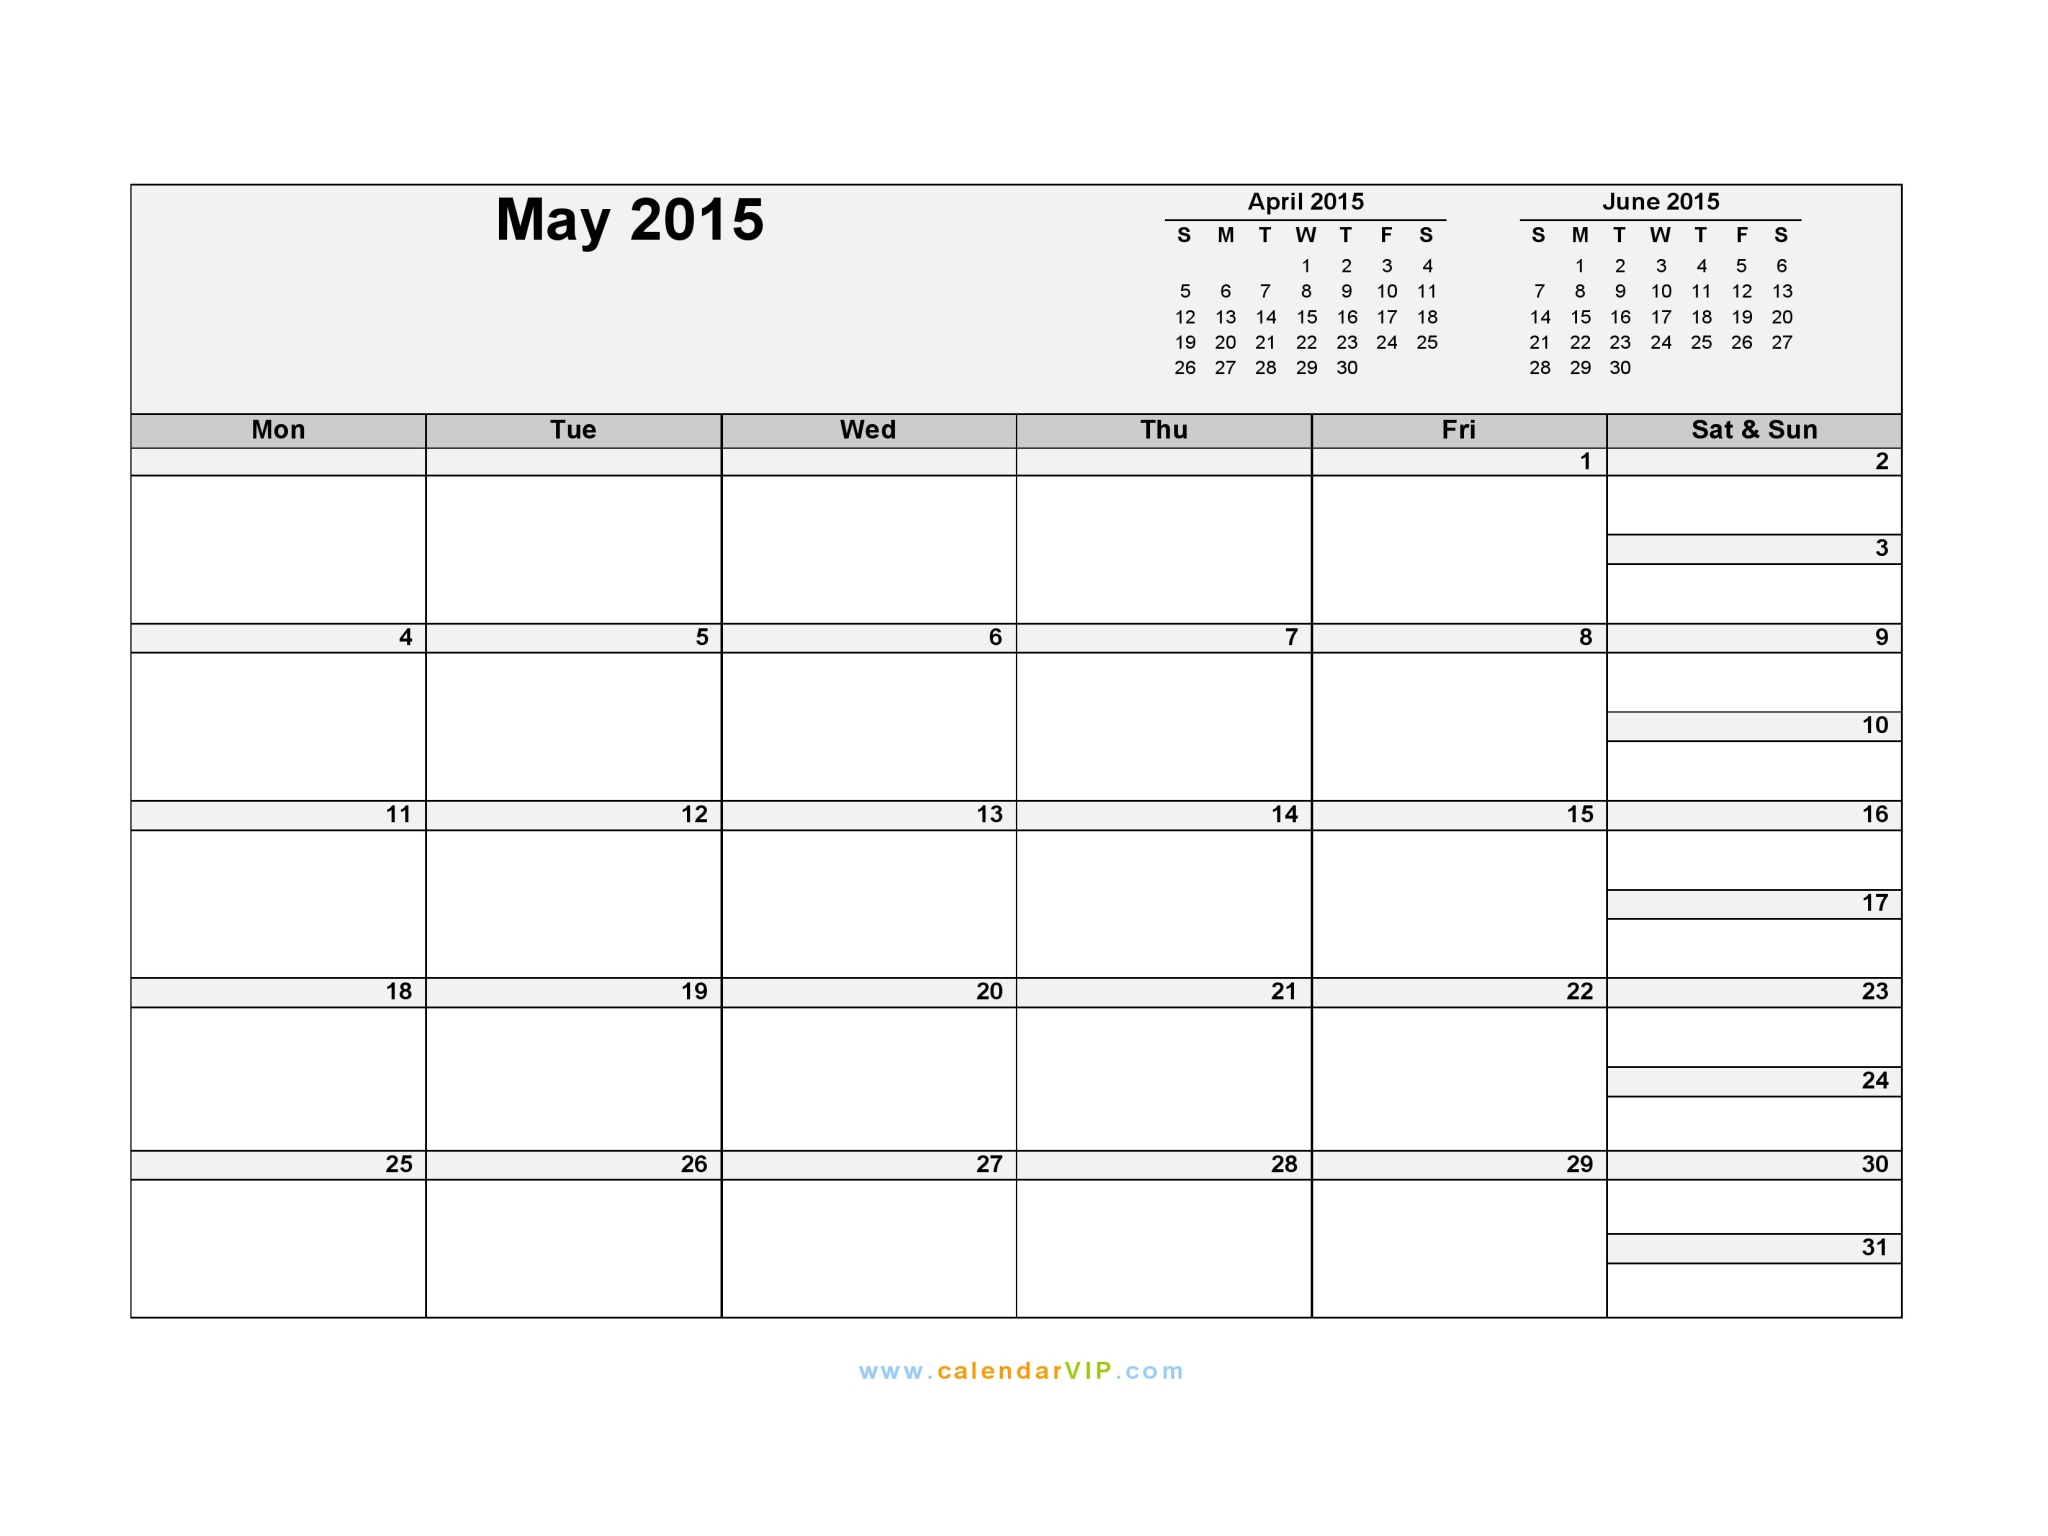 calendar template for may 2015